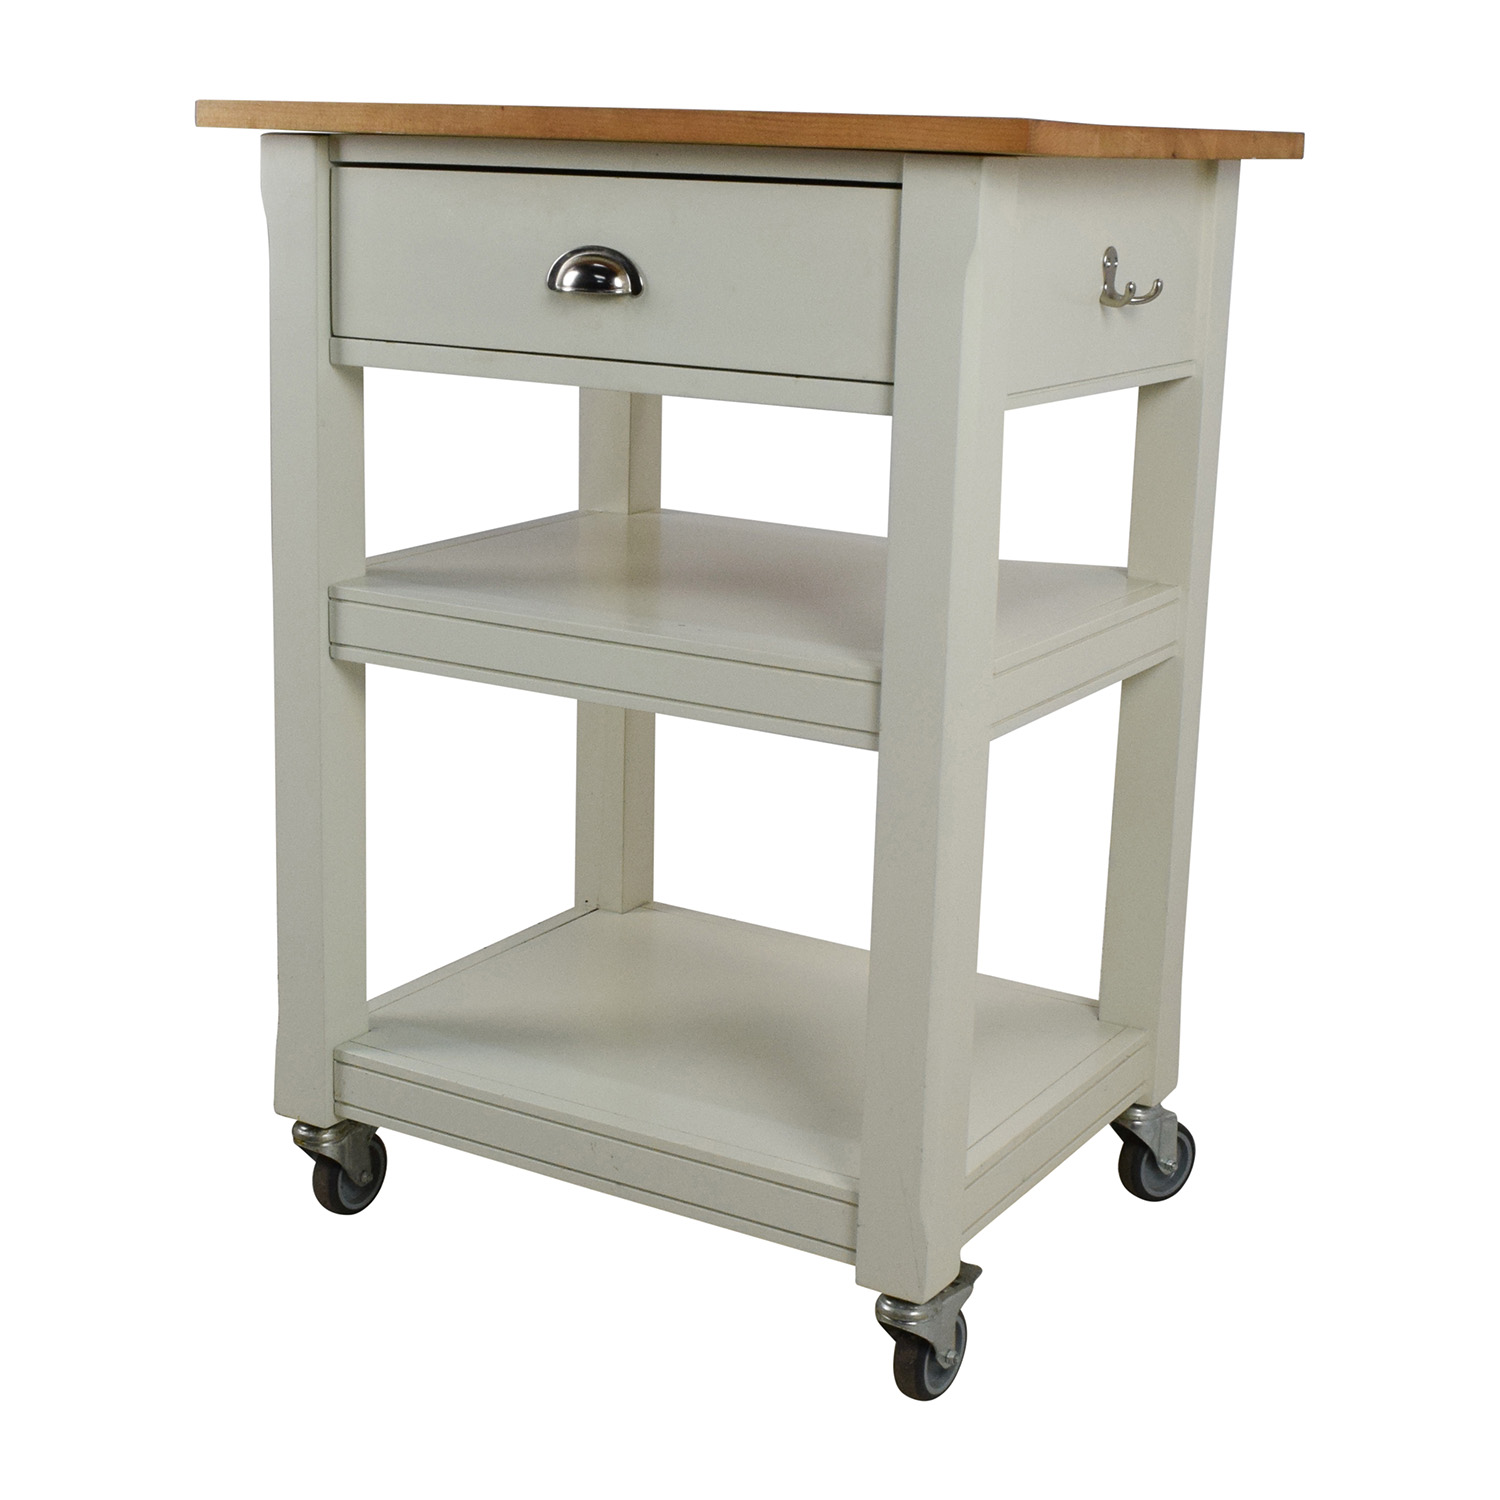 second hand rolling kitchen cart with cutting board kitchen utility table Utility Tables shop Rolling Kitchen Cart with Cutting Board online